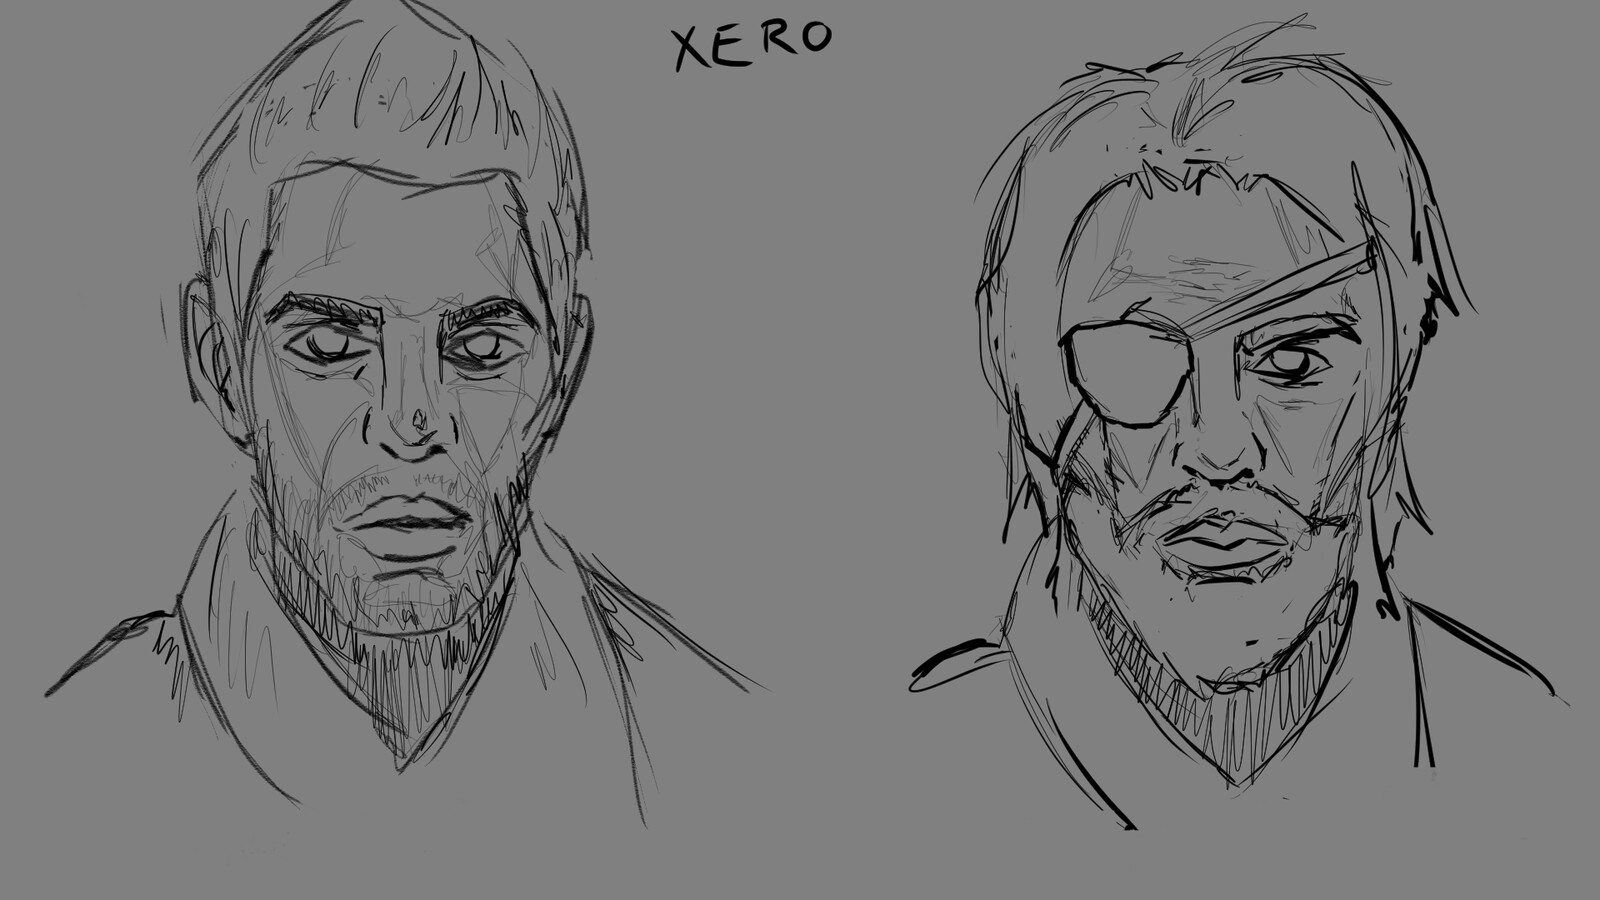 Sketching (with light shadowmapping) in Sketchbook Pro